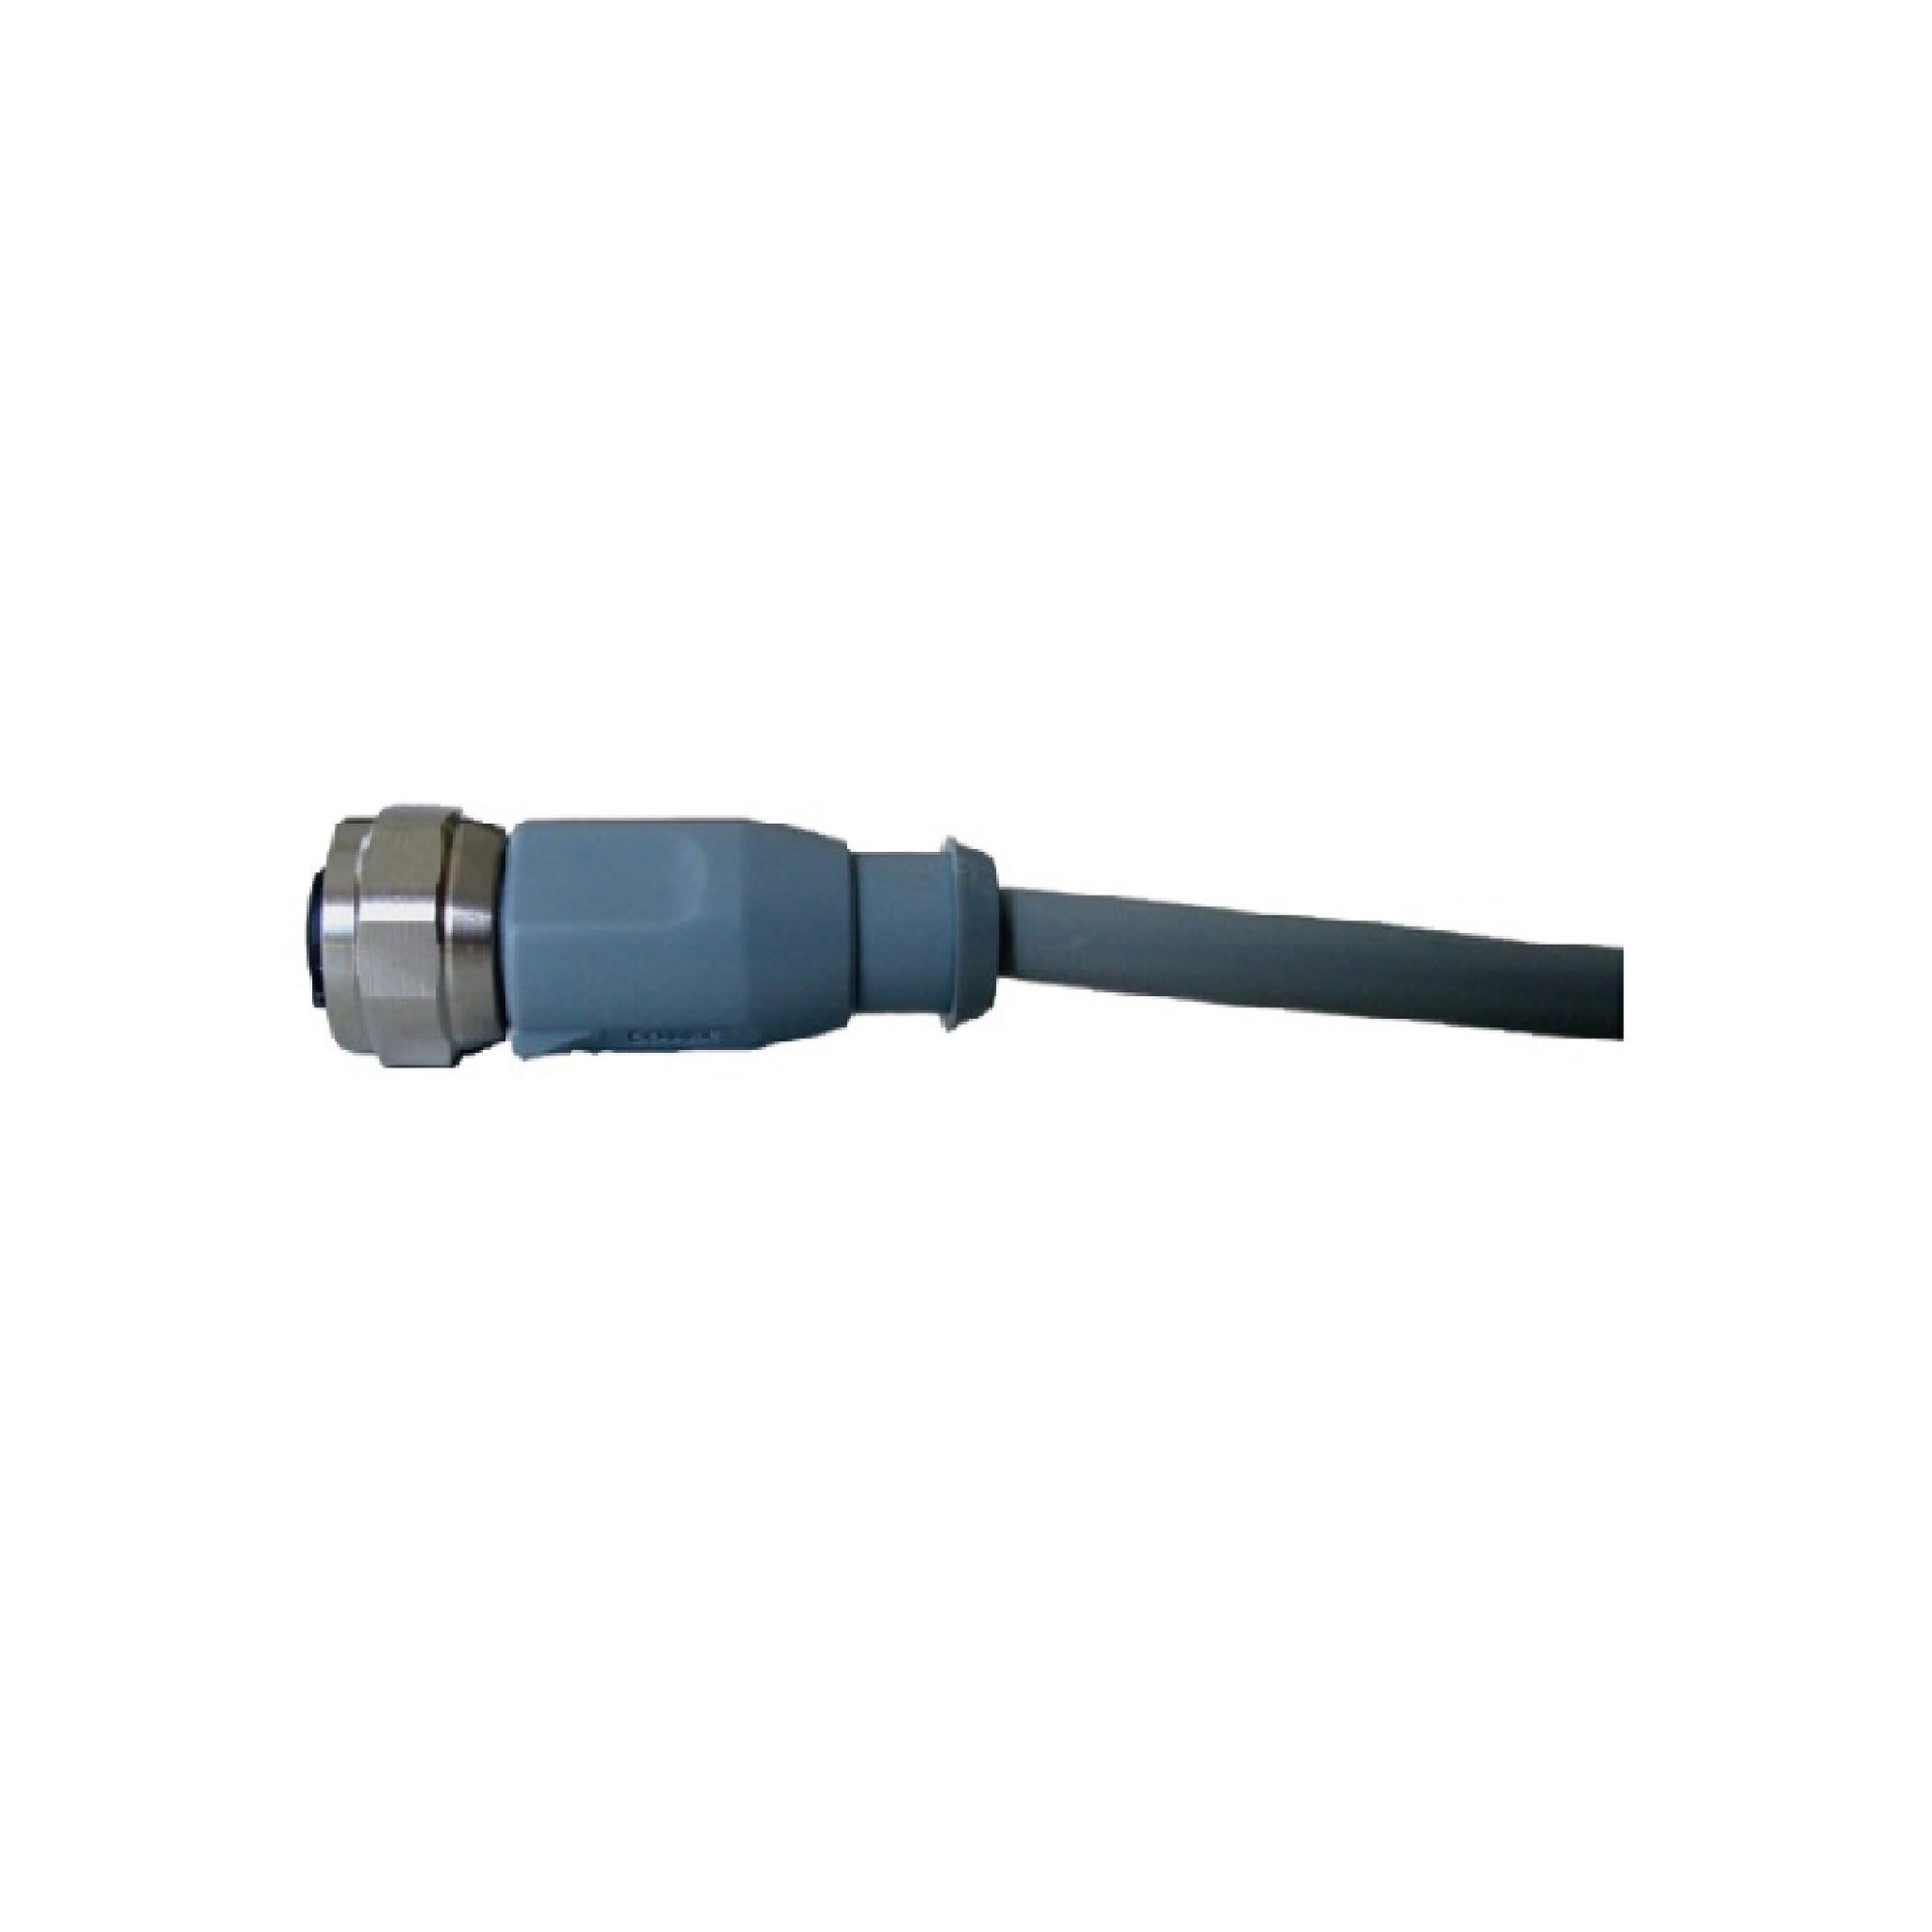 Cable M12 to Blunt Cut 10m length